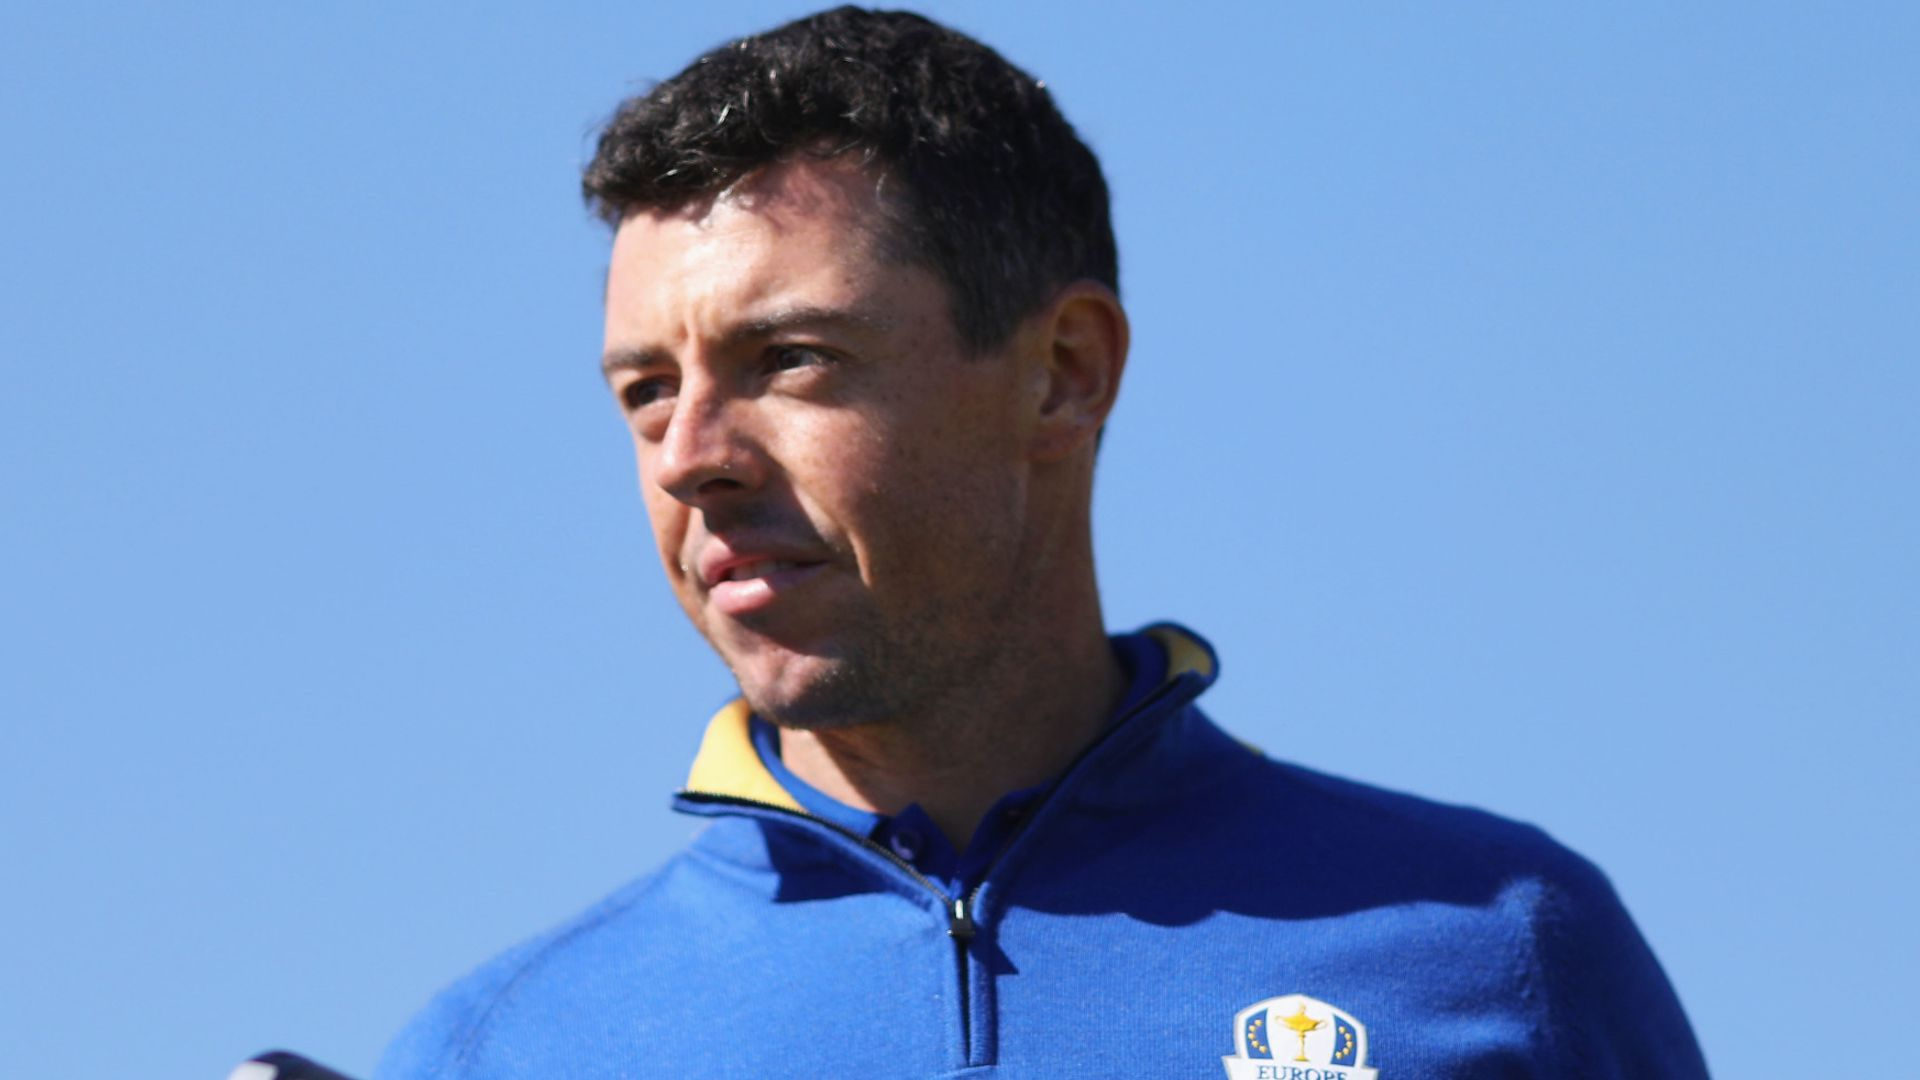 McIlroy 'can't see' 2020 Ryder Cup